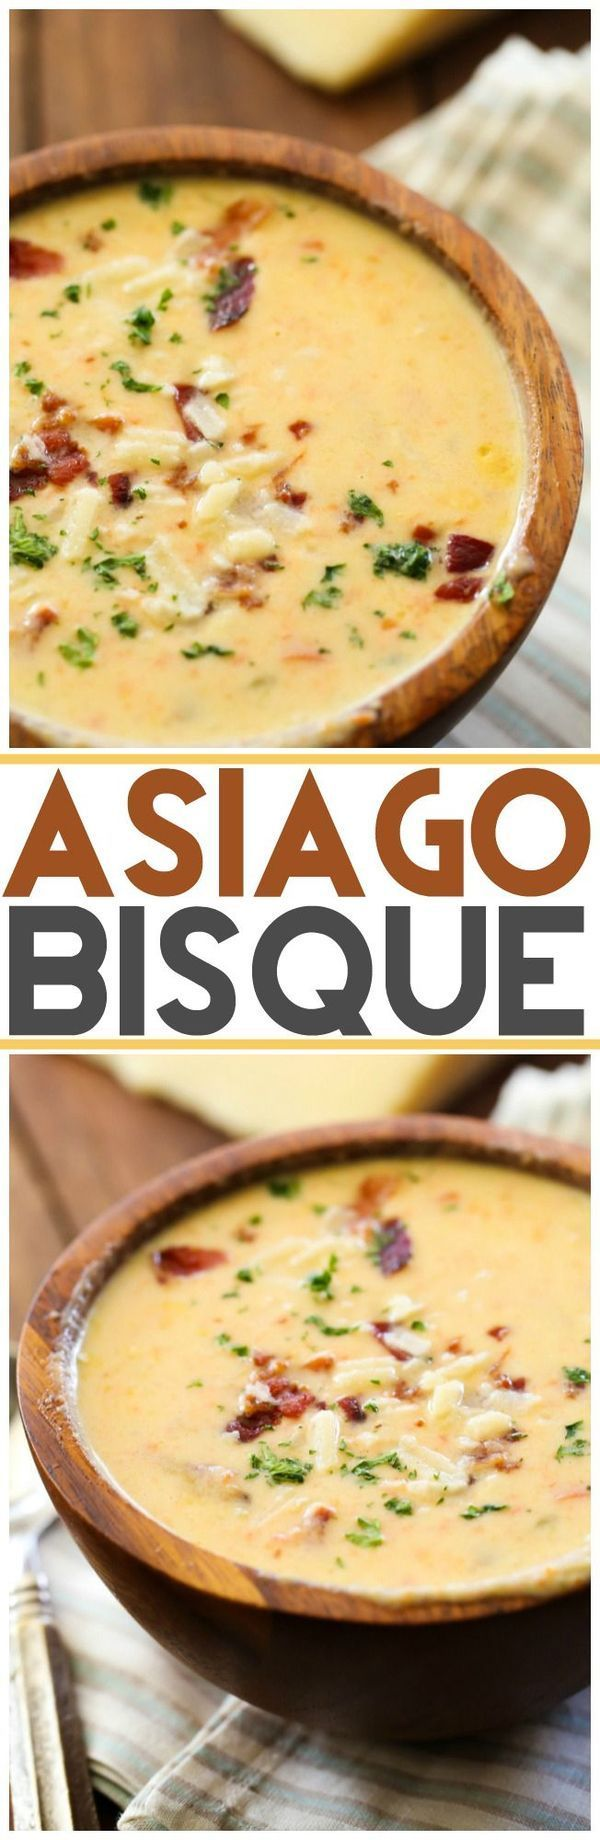 6 slices Bacon, cooked. 3 cups Carrots. 1 cup Celery. 3 cups Onion. 4 cups Potatoes. 2 cups Chicken stock. 2 cups Asiago cheese. 6 tbsp Butter. 2 cups Half and half. 1 cup White wine. #CookingIdeas